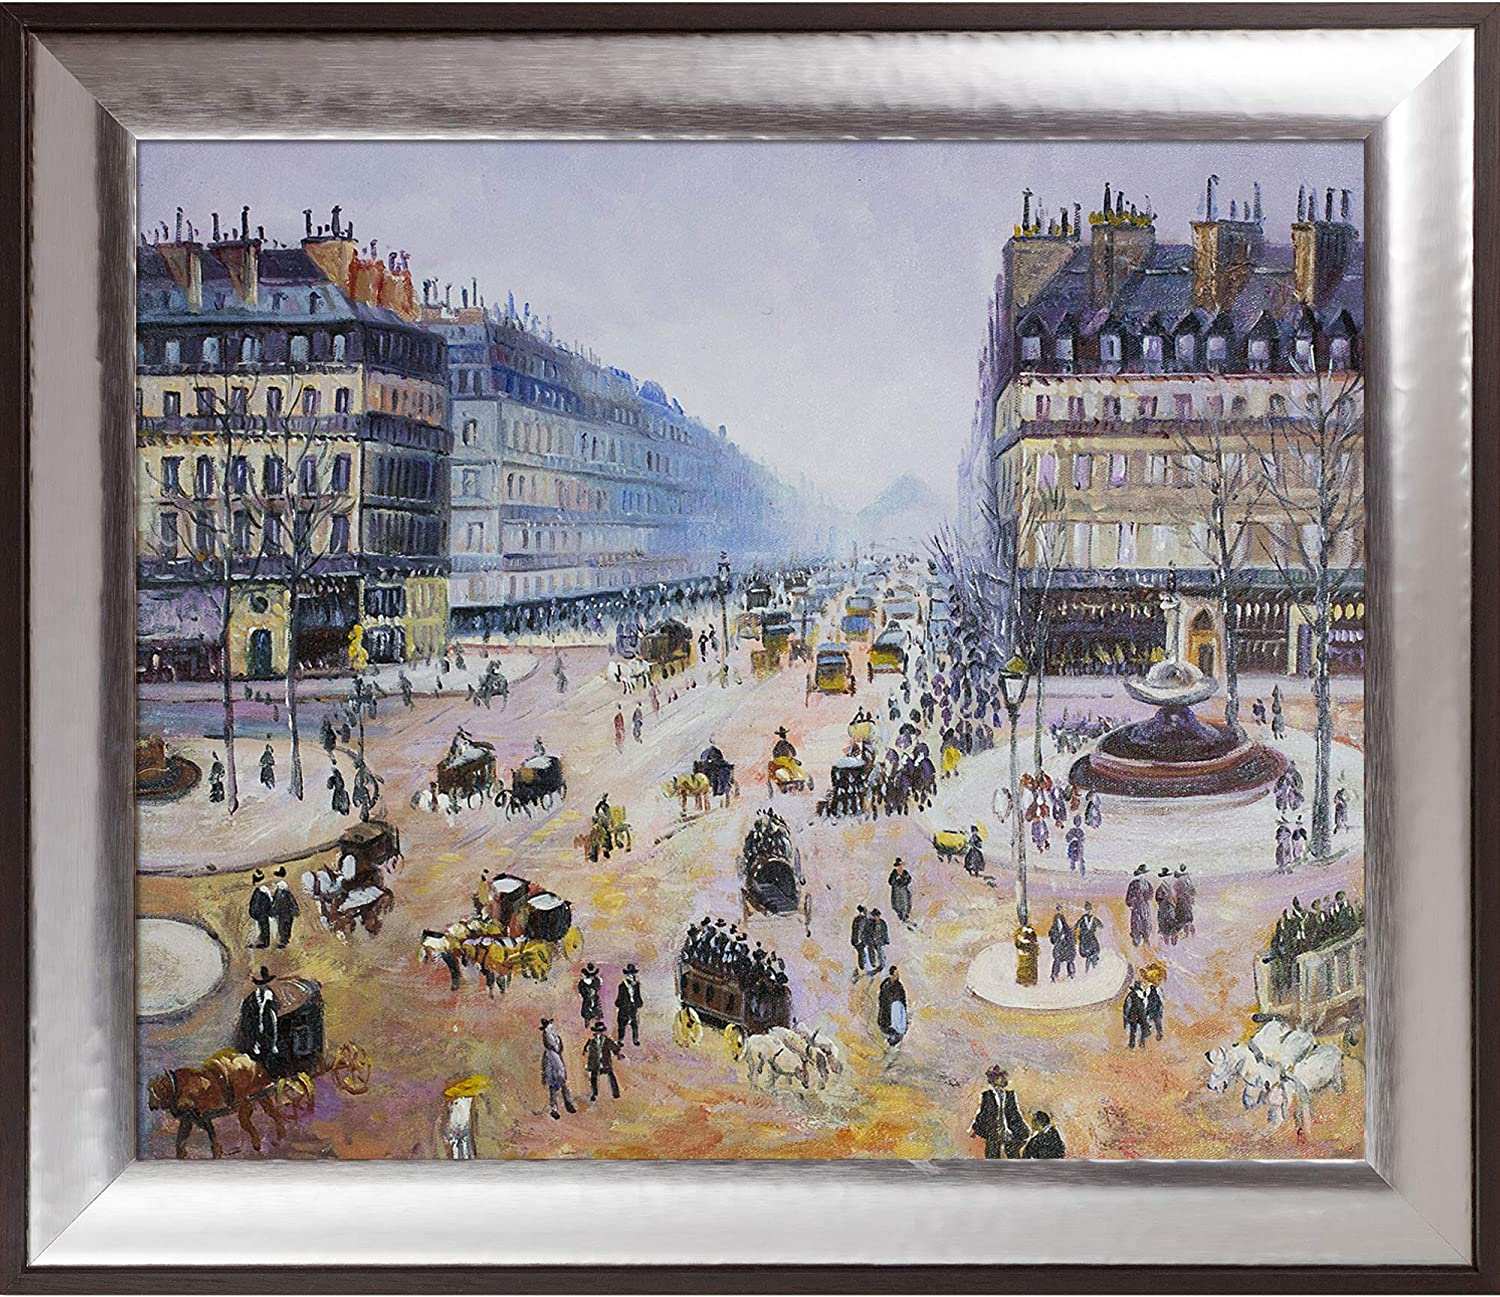 overstockArt Road to Bas-Breau Fontainebleau by Monet Hand Painted Oil on Canvas with Versailles Silver King Frame